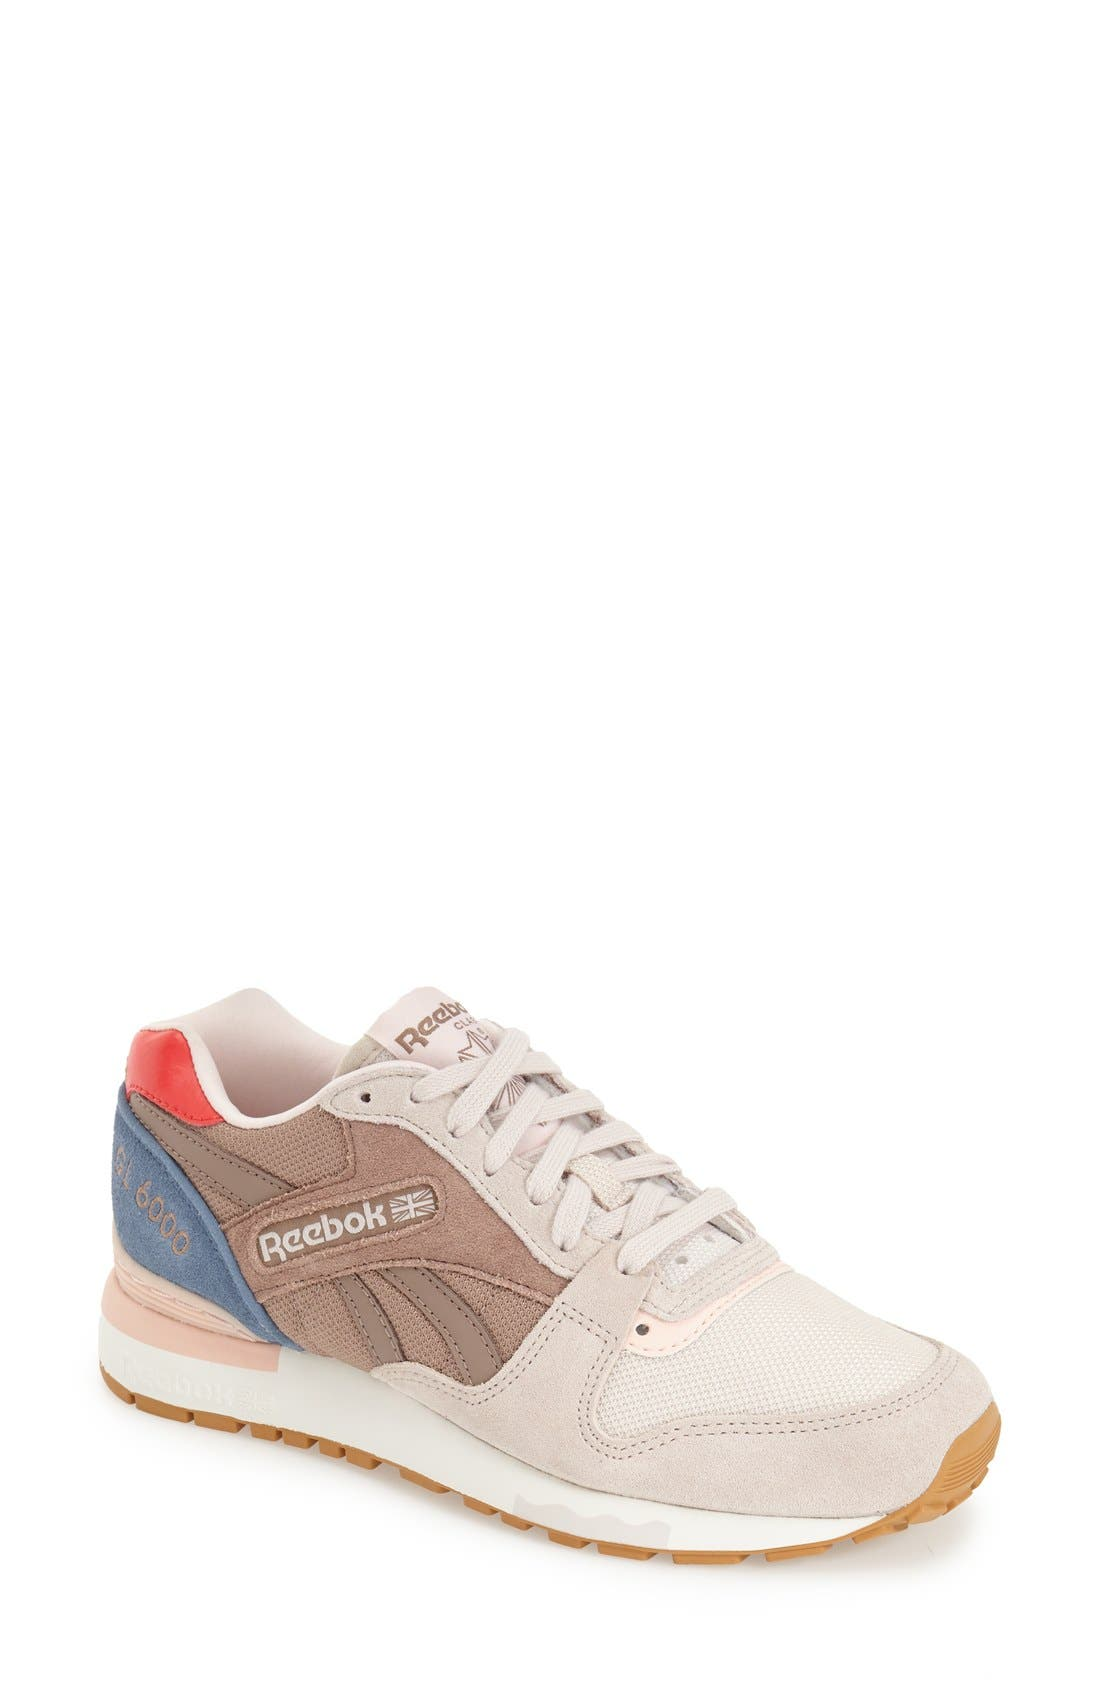 Alternate Image 1 Selected - Reebok 'GL 6000' Sneaker (Women)